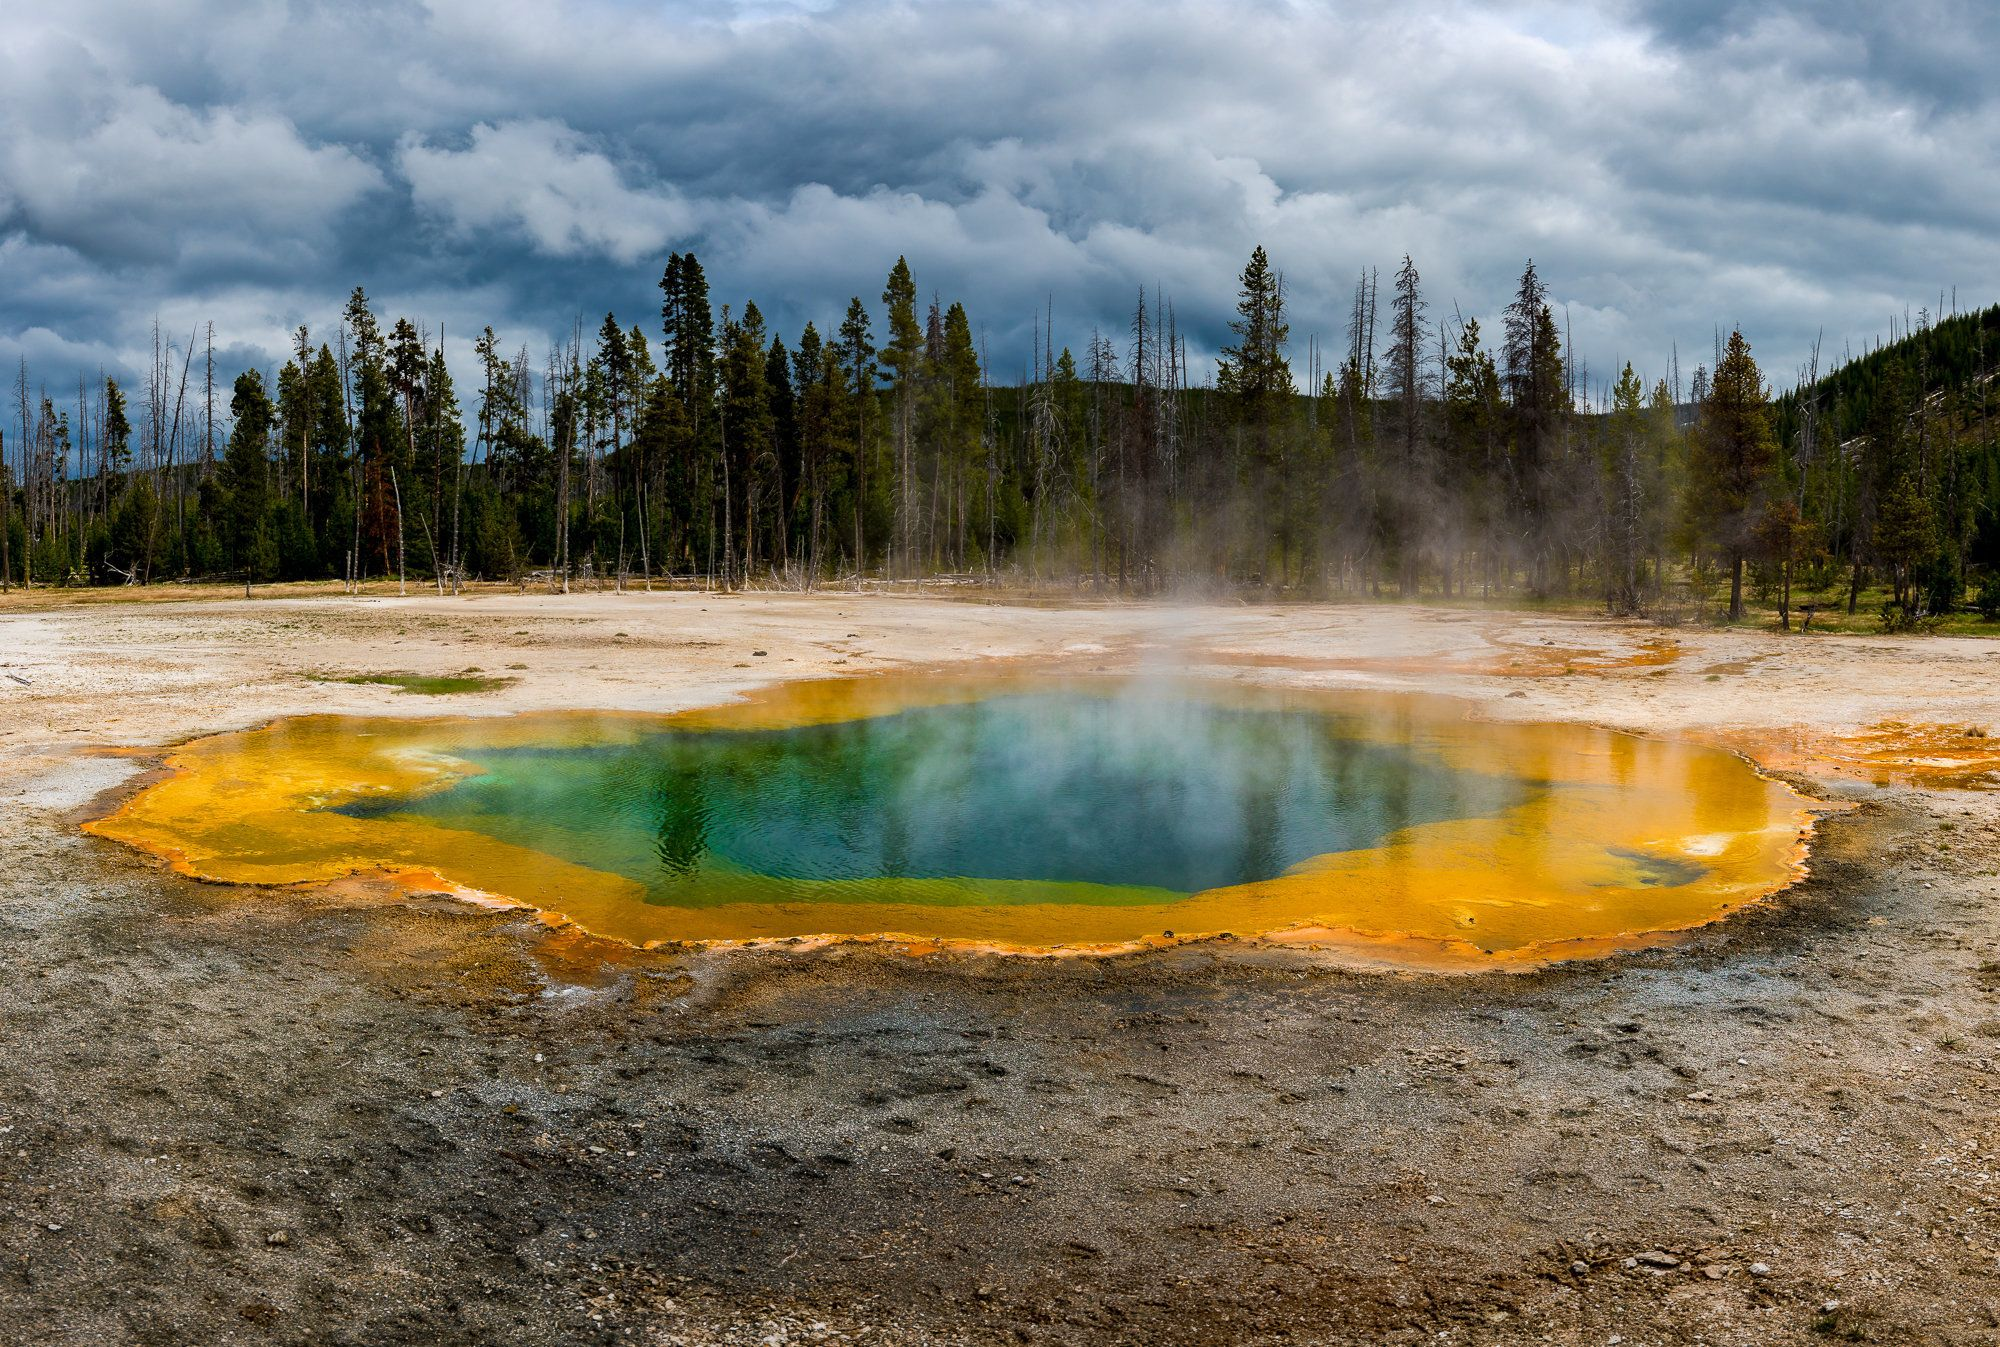 Nearlyhalf of the world's natural World Heritage Sites, including Yellowstone National Park, are threatened by humanity